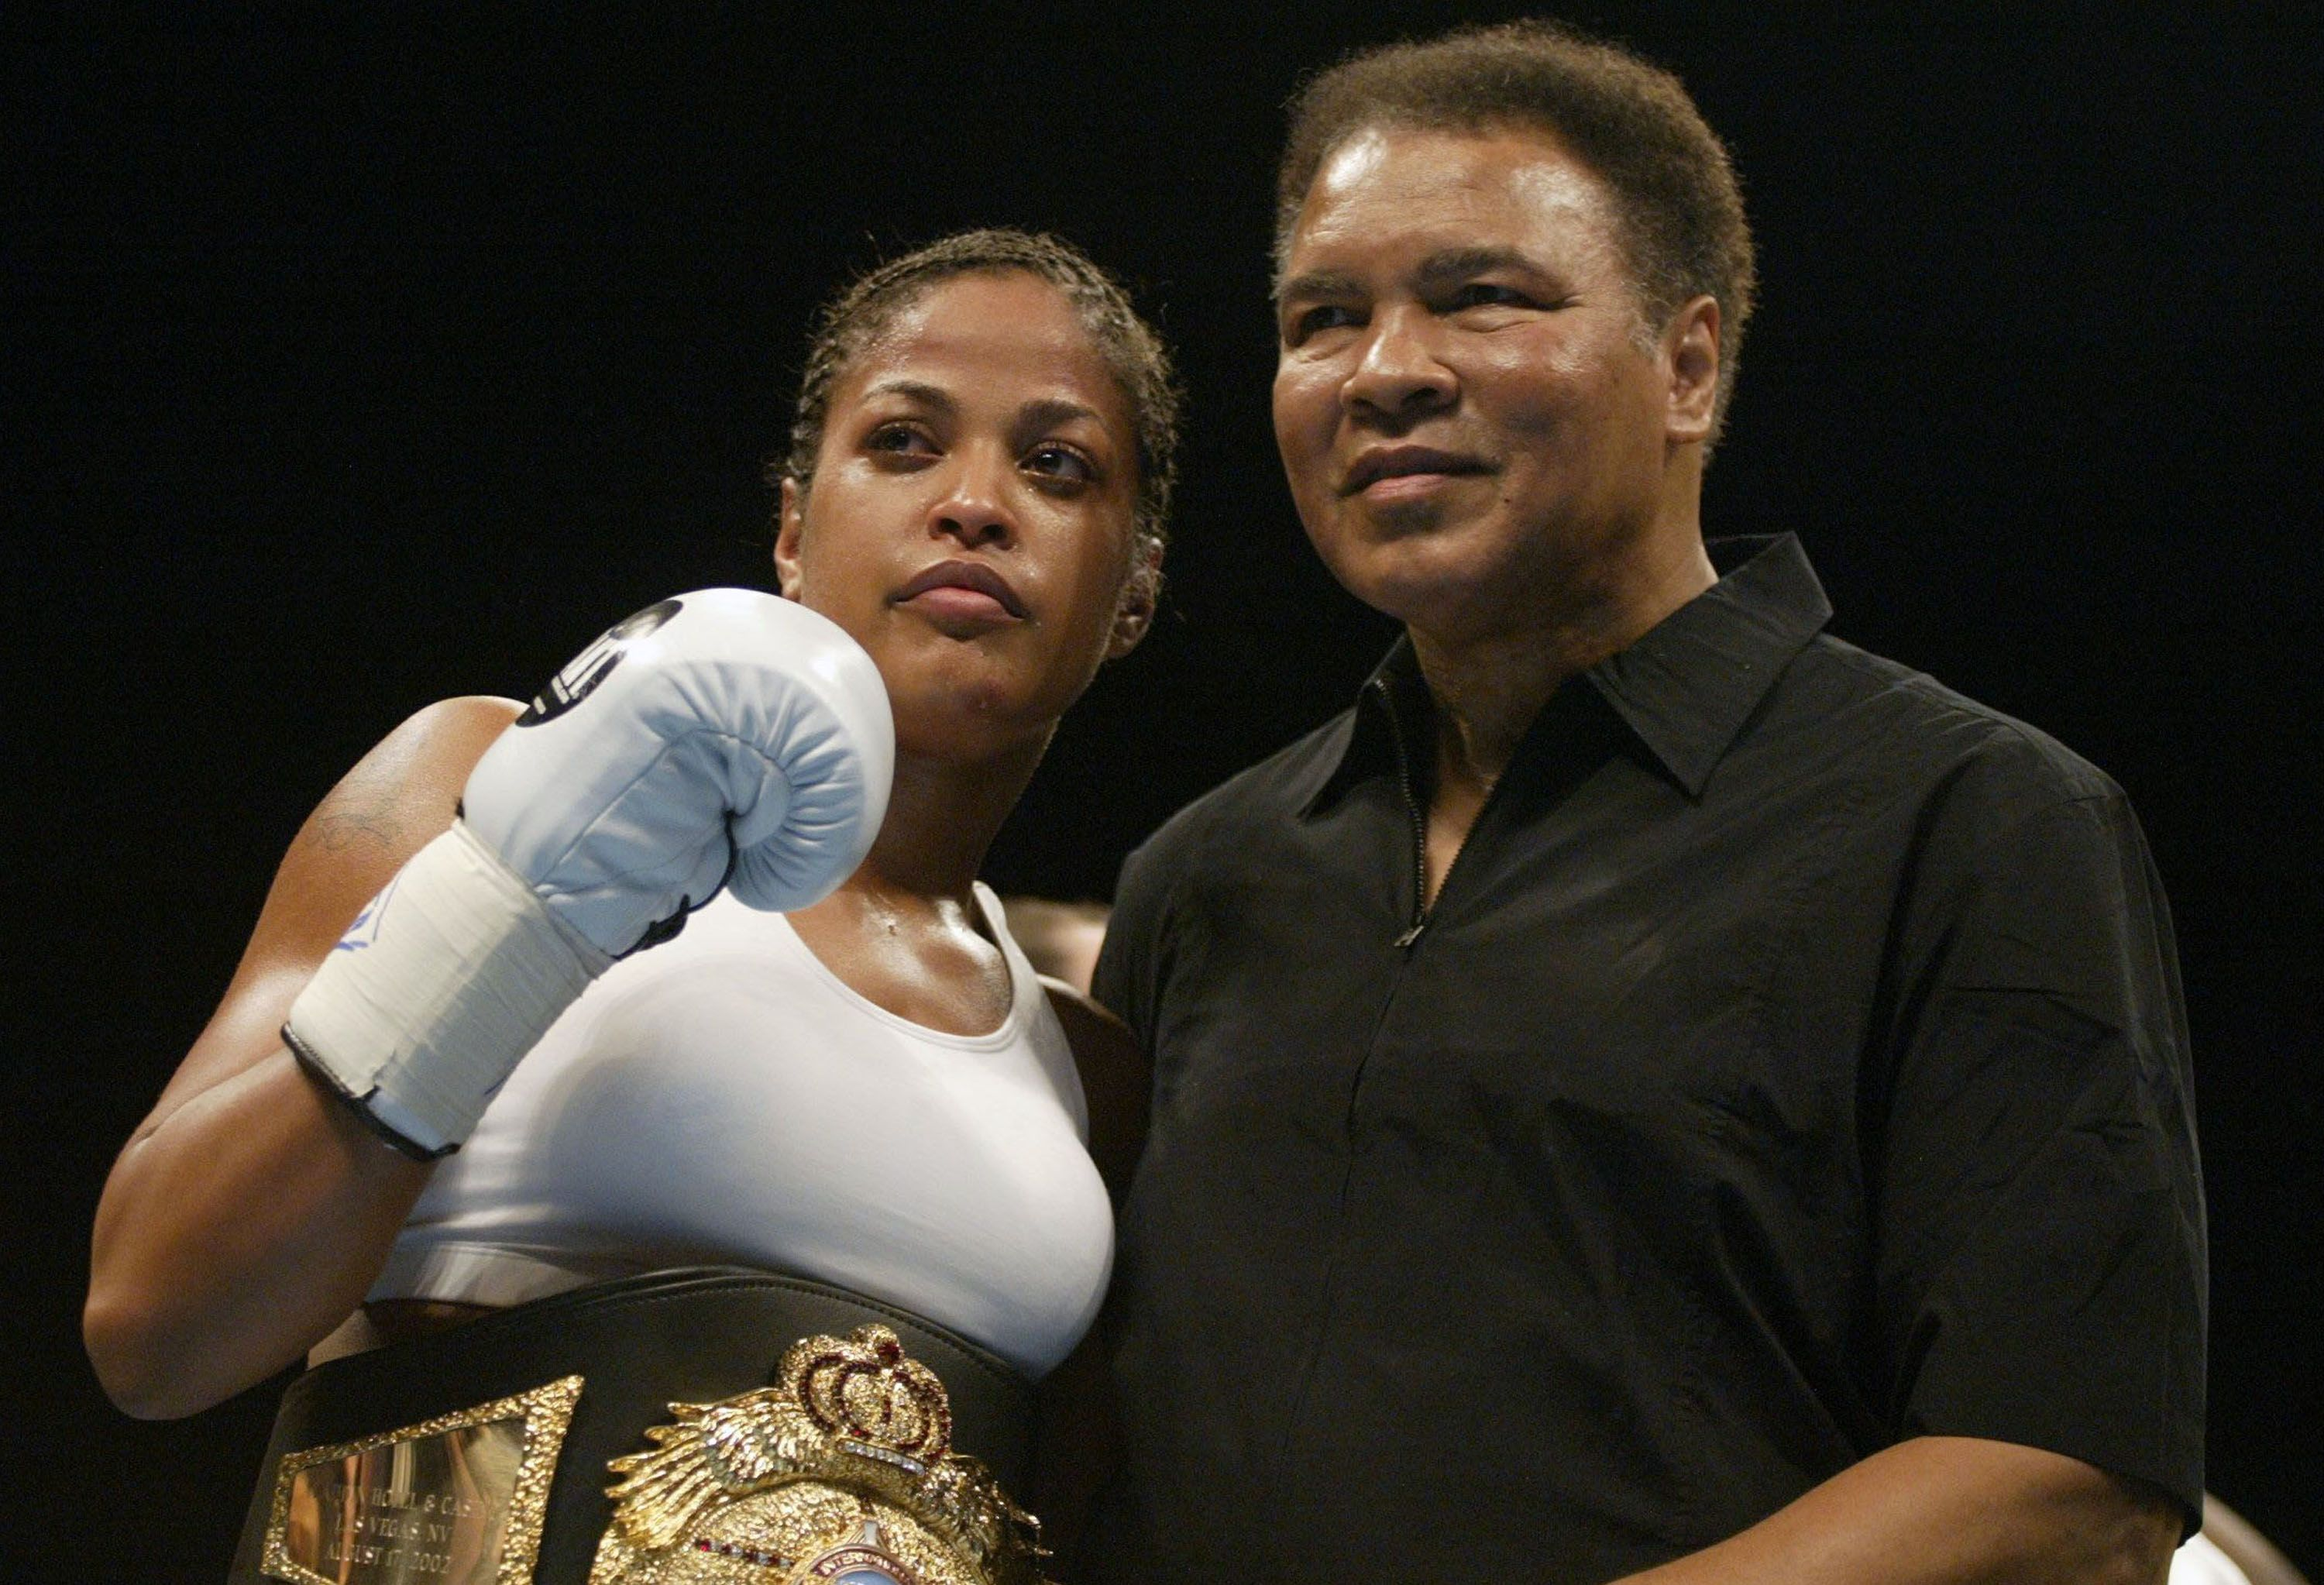 Laila Ali poses with her late father and former boxer, Muhammad Ali, after defeating Suzy Taylor at the Aladdin Casino on August 17, 2002. | Photo: Getty Images